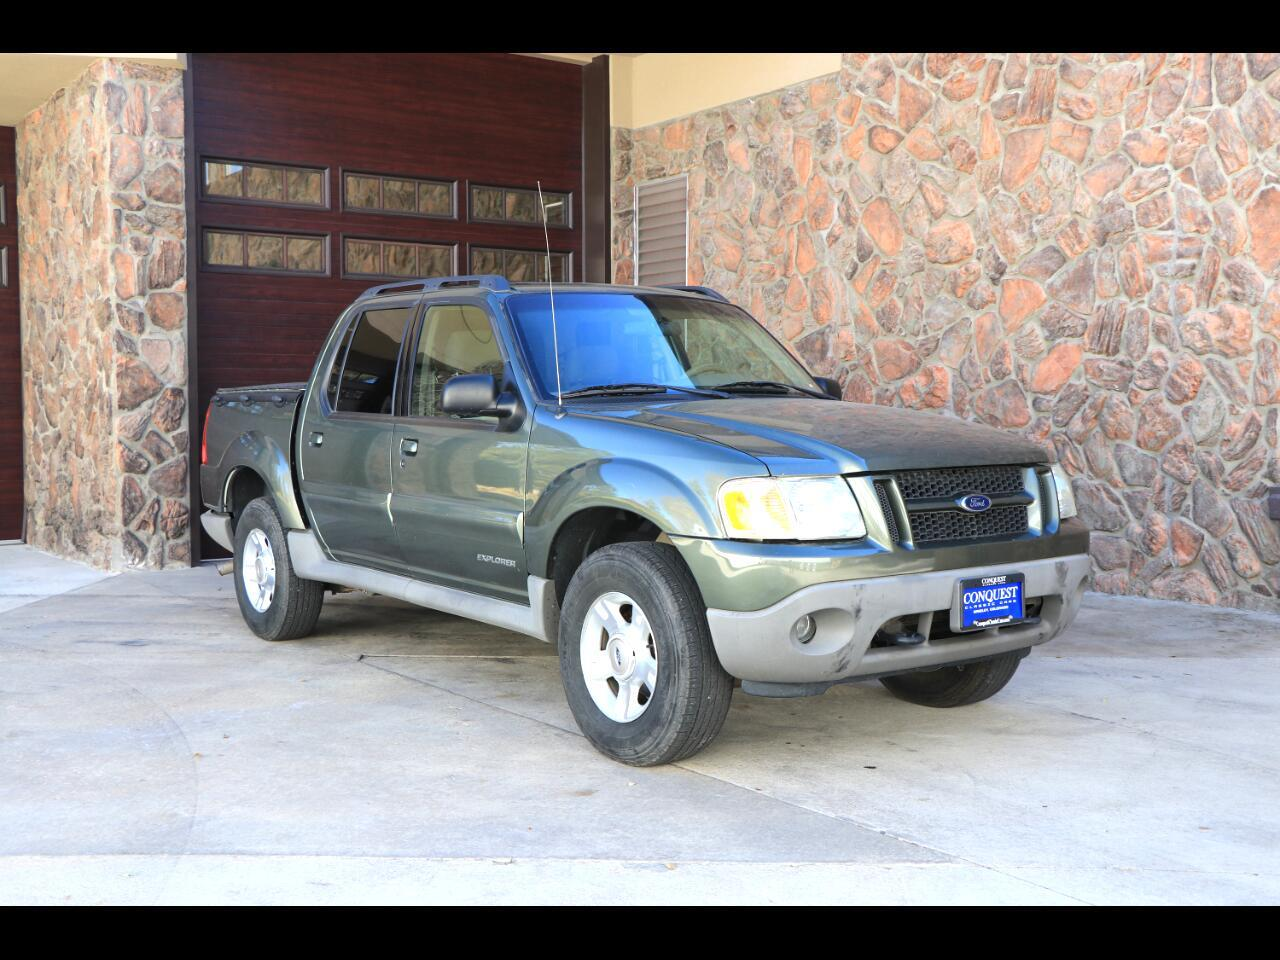 for sale 2001 ford explorer in greeley, colorado cars - greeley, co at geebo